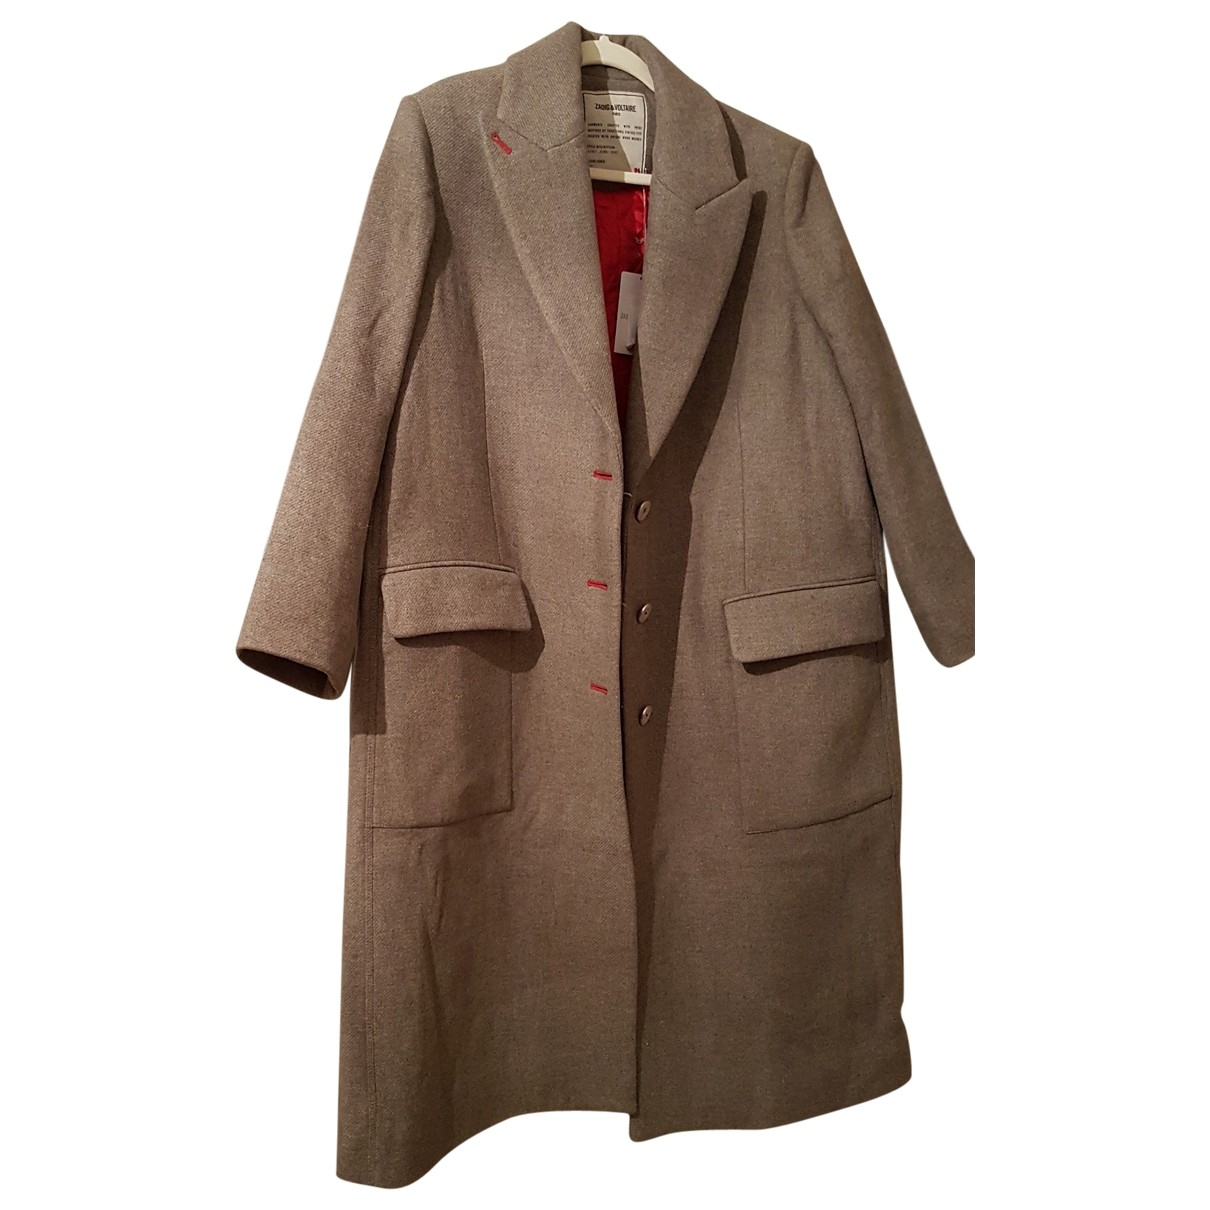 Zadig & Voltaire \N Beige Wool coat for Women L International